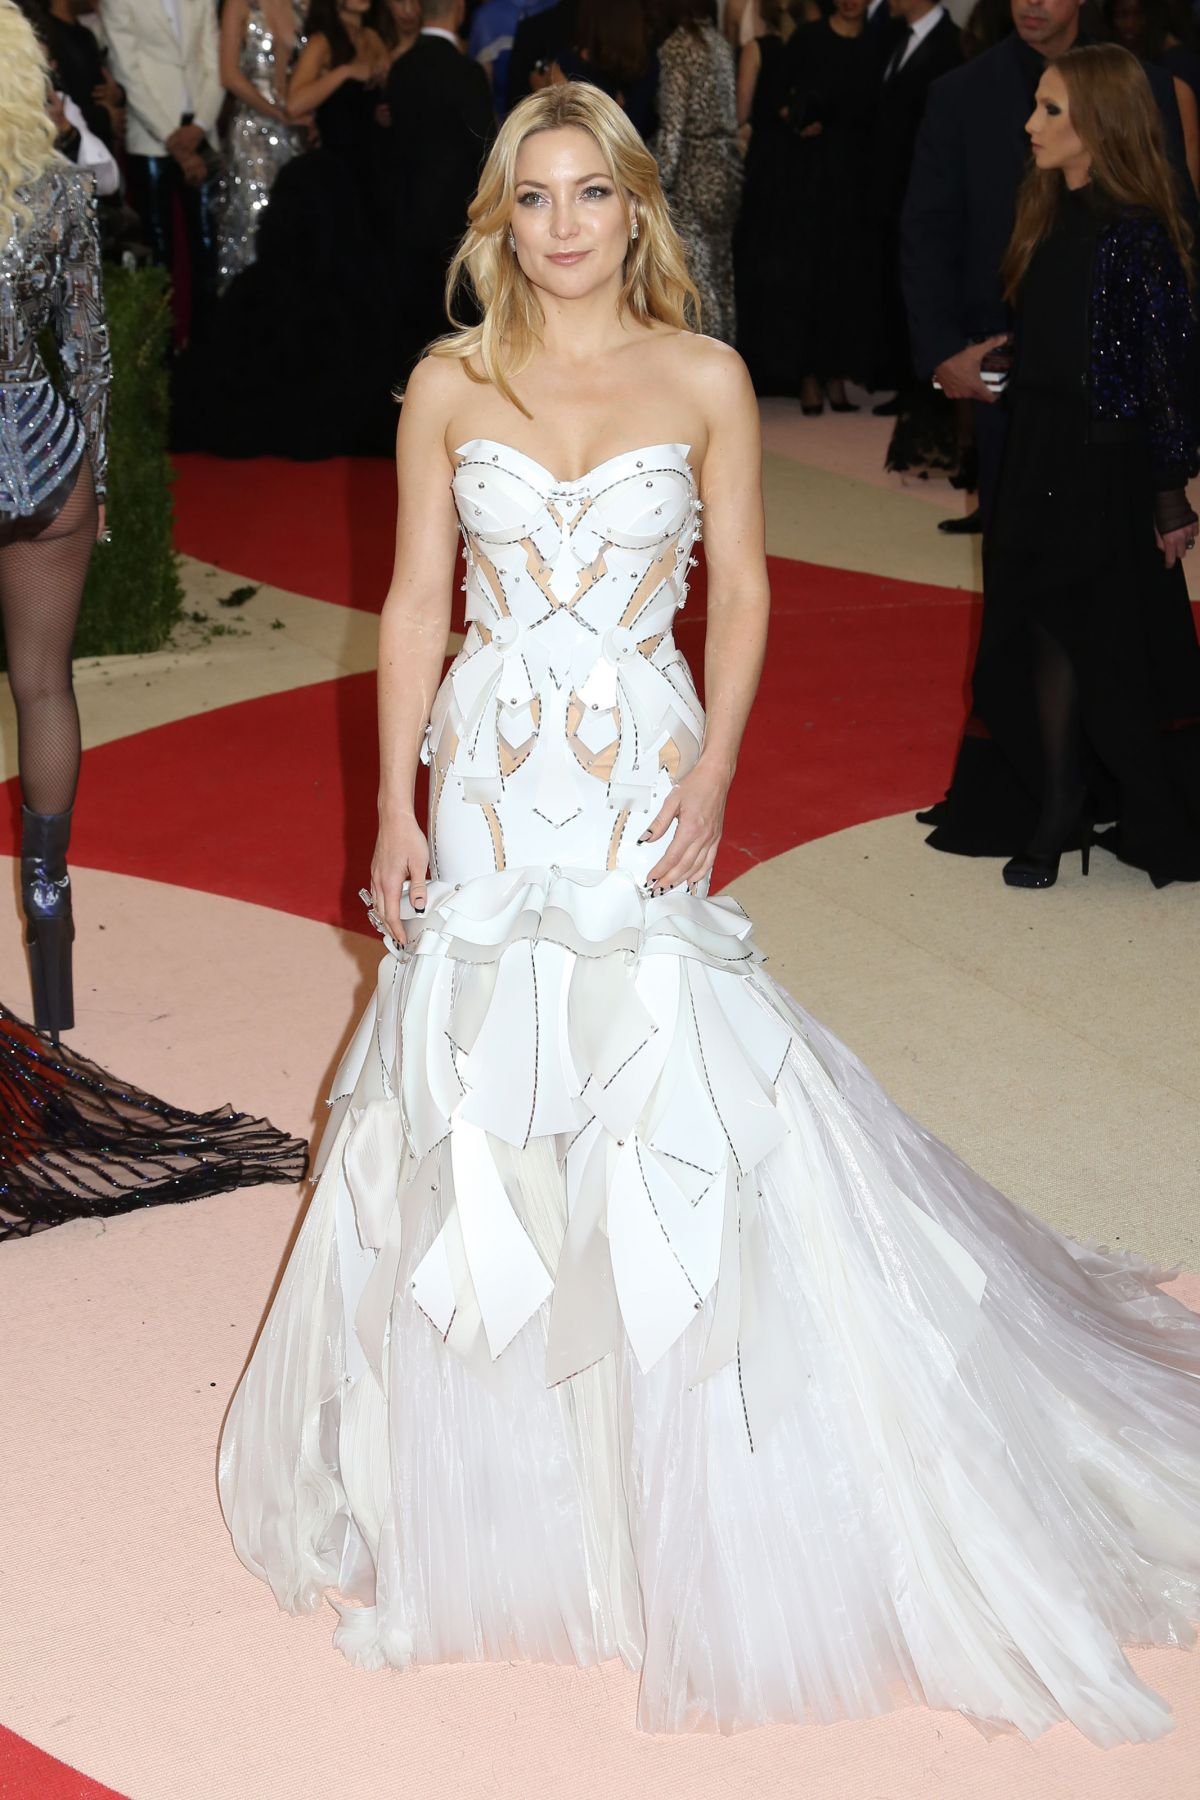 http://www.celebzz.com/wp-content/uploads/2016/05/kate-hudson-at-2016-costume-institute-met-gala-in-new-york_1.jpg